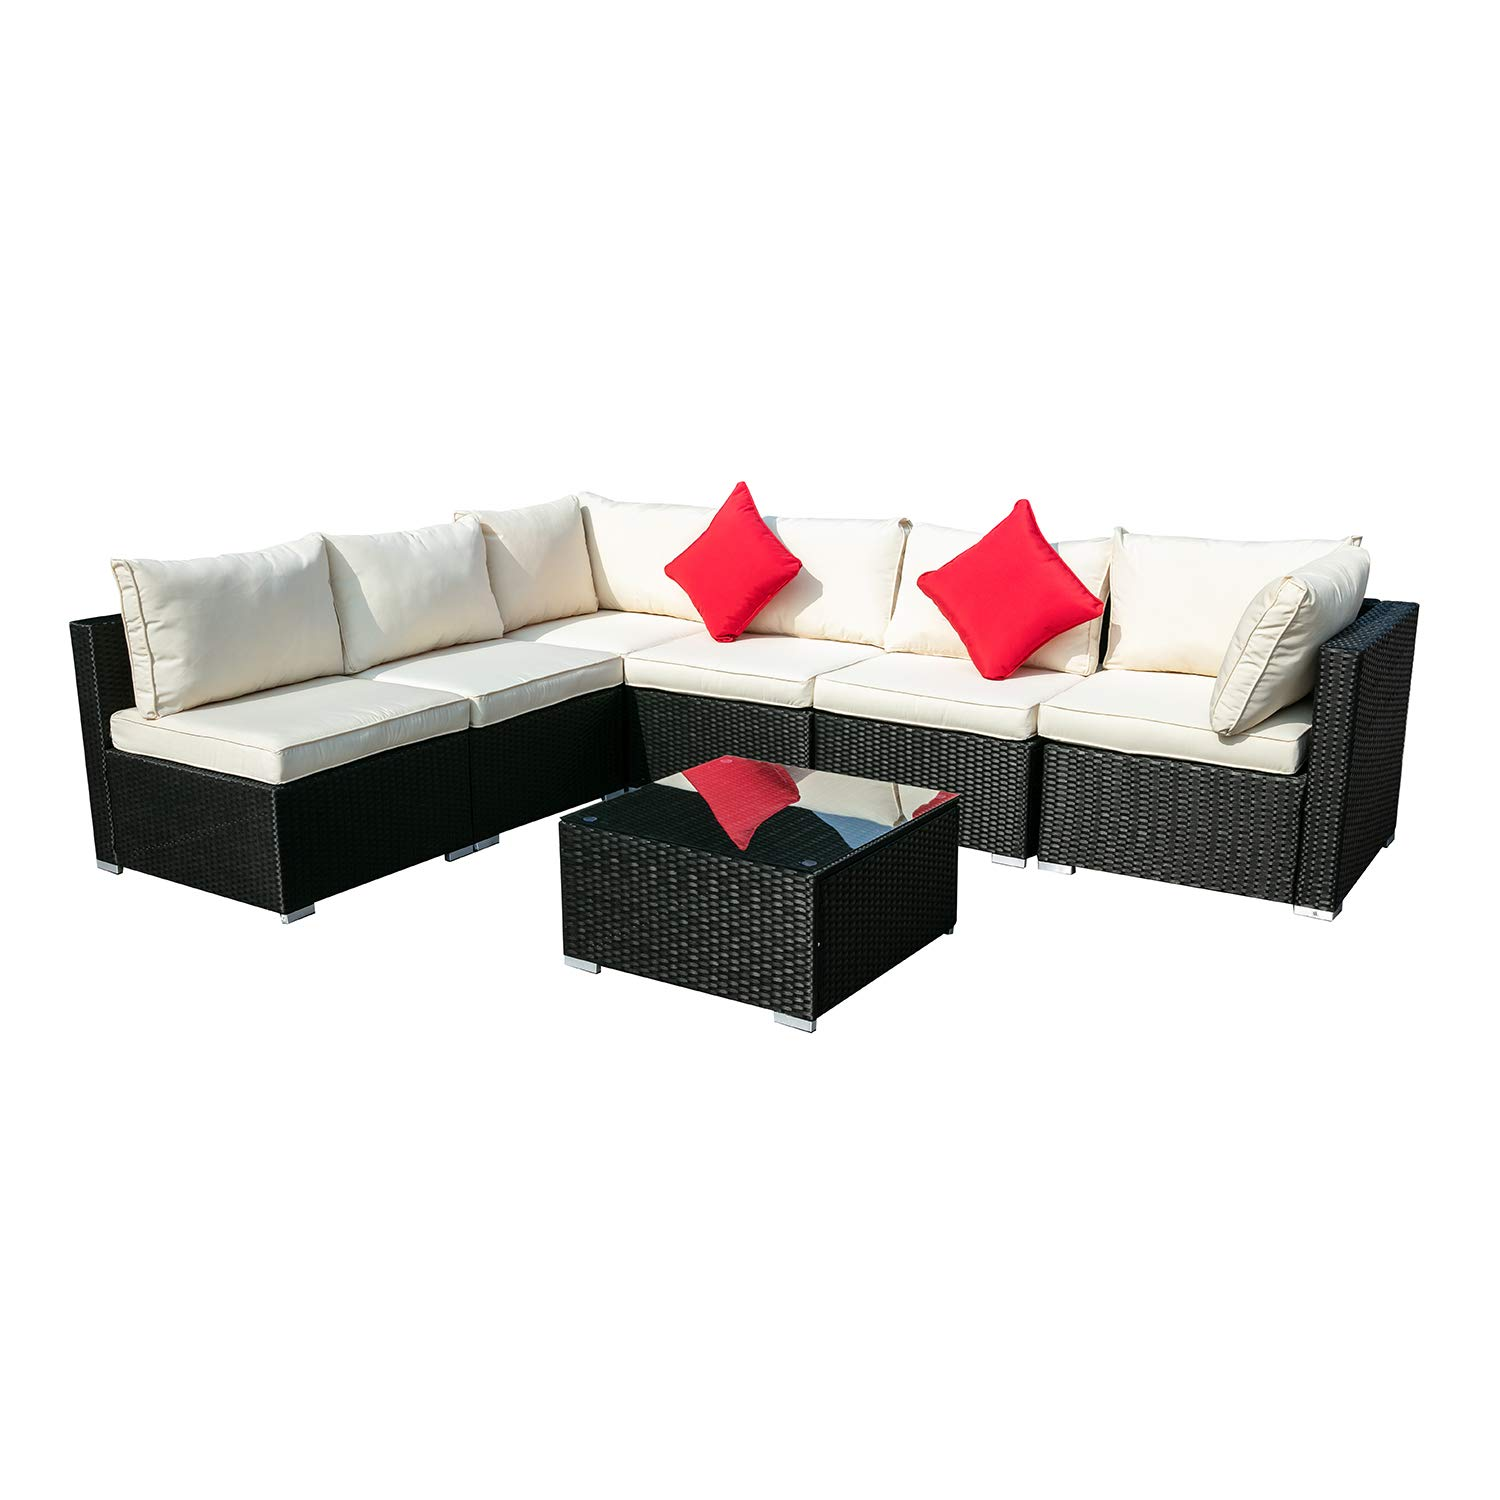 KOOLWOOM Outdoor Patio Furniture Set,Sectional Wicker Sofa Washable Waterproof PE Cushions,Backyard,Pool 7, White